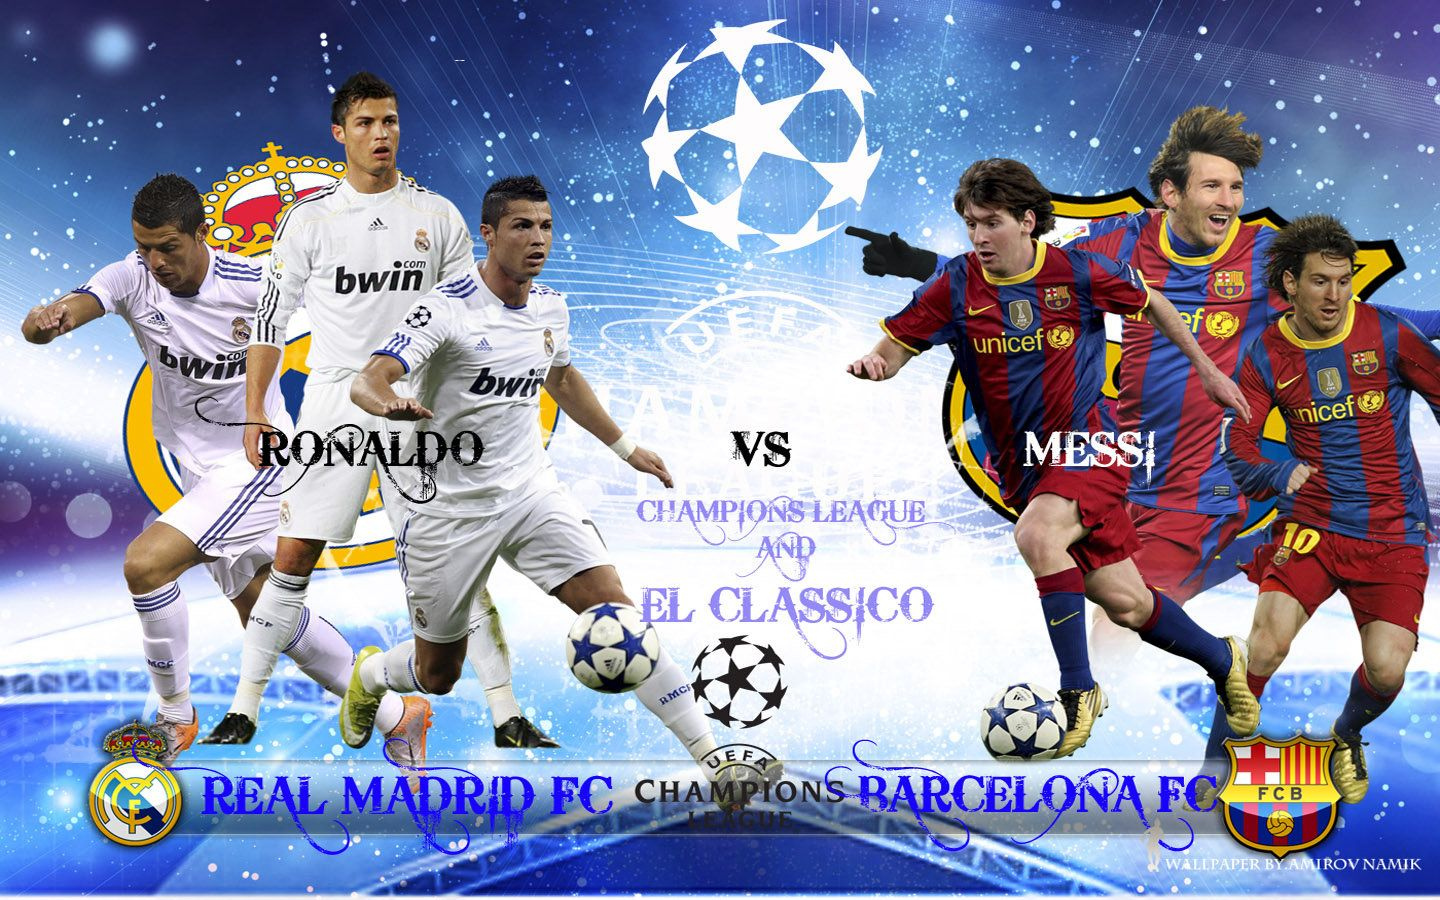 Real Madrid Vs Barcelona Wallpaper Free Download